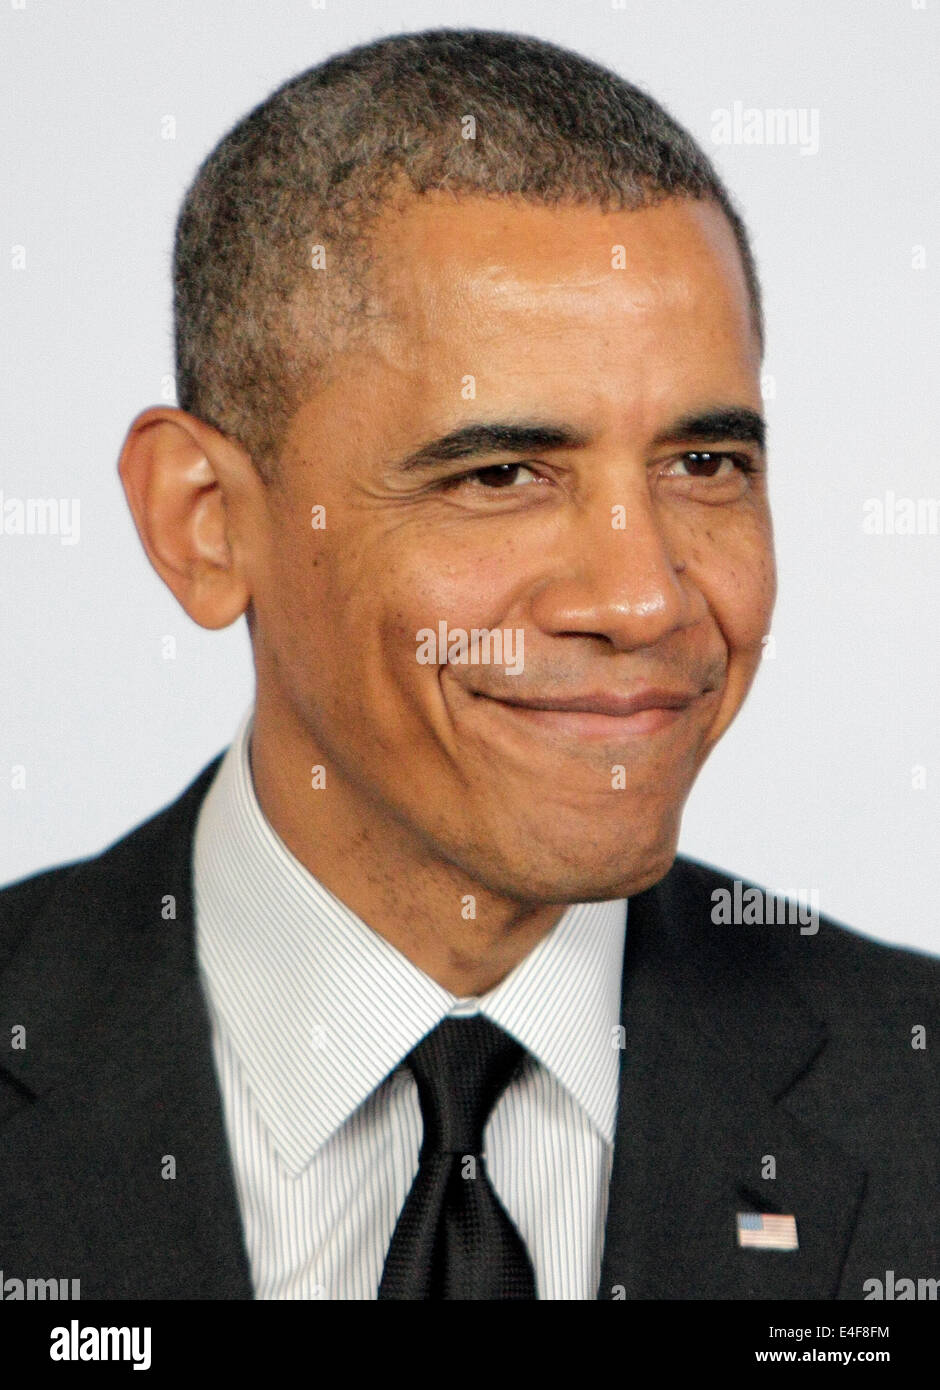 US President, barack obama at G7 SUMMIT IN BRUSSELS BELGIUM 2014 - Stock Image